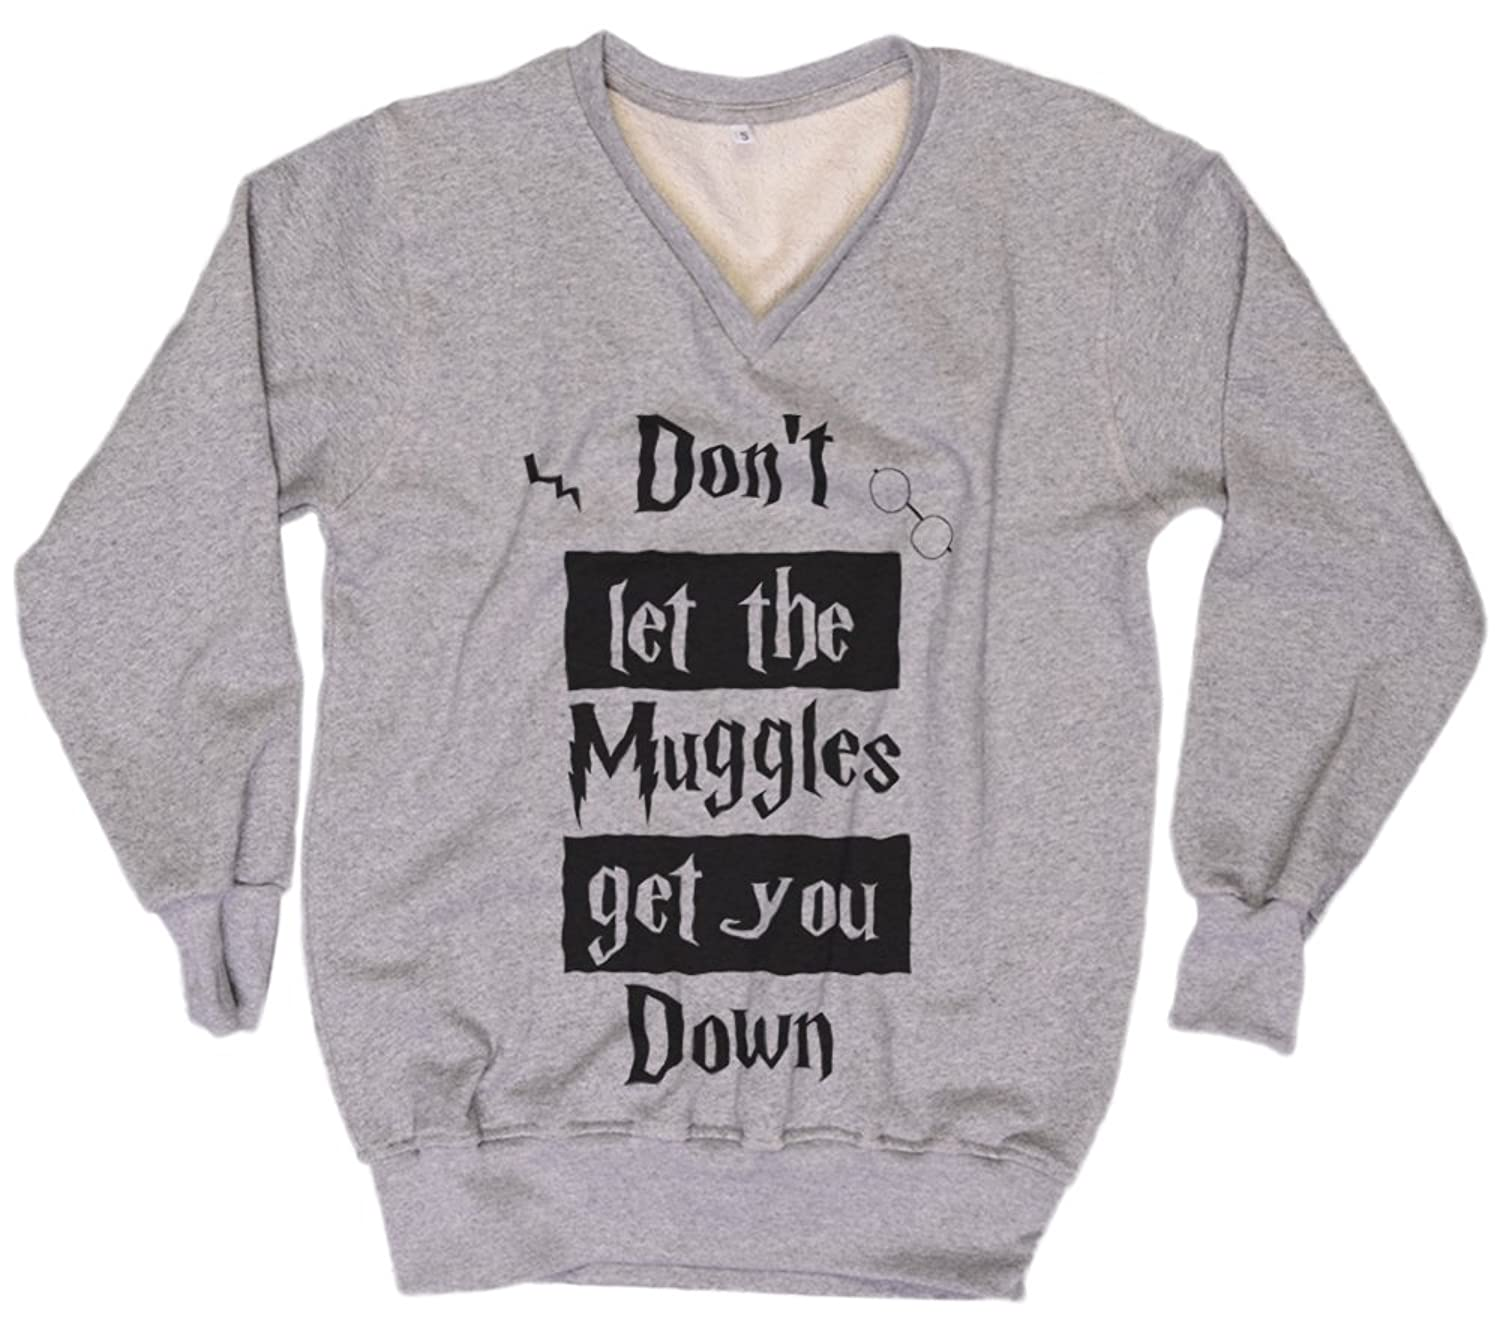 cheap Harry Potter Sweater Don't let the muggles get you down Sweater Everytees Sweatshirt Women Gift for Women